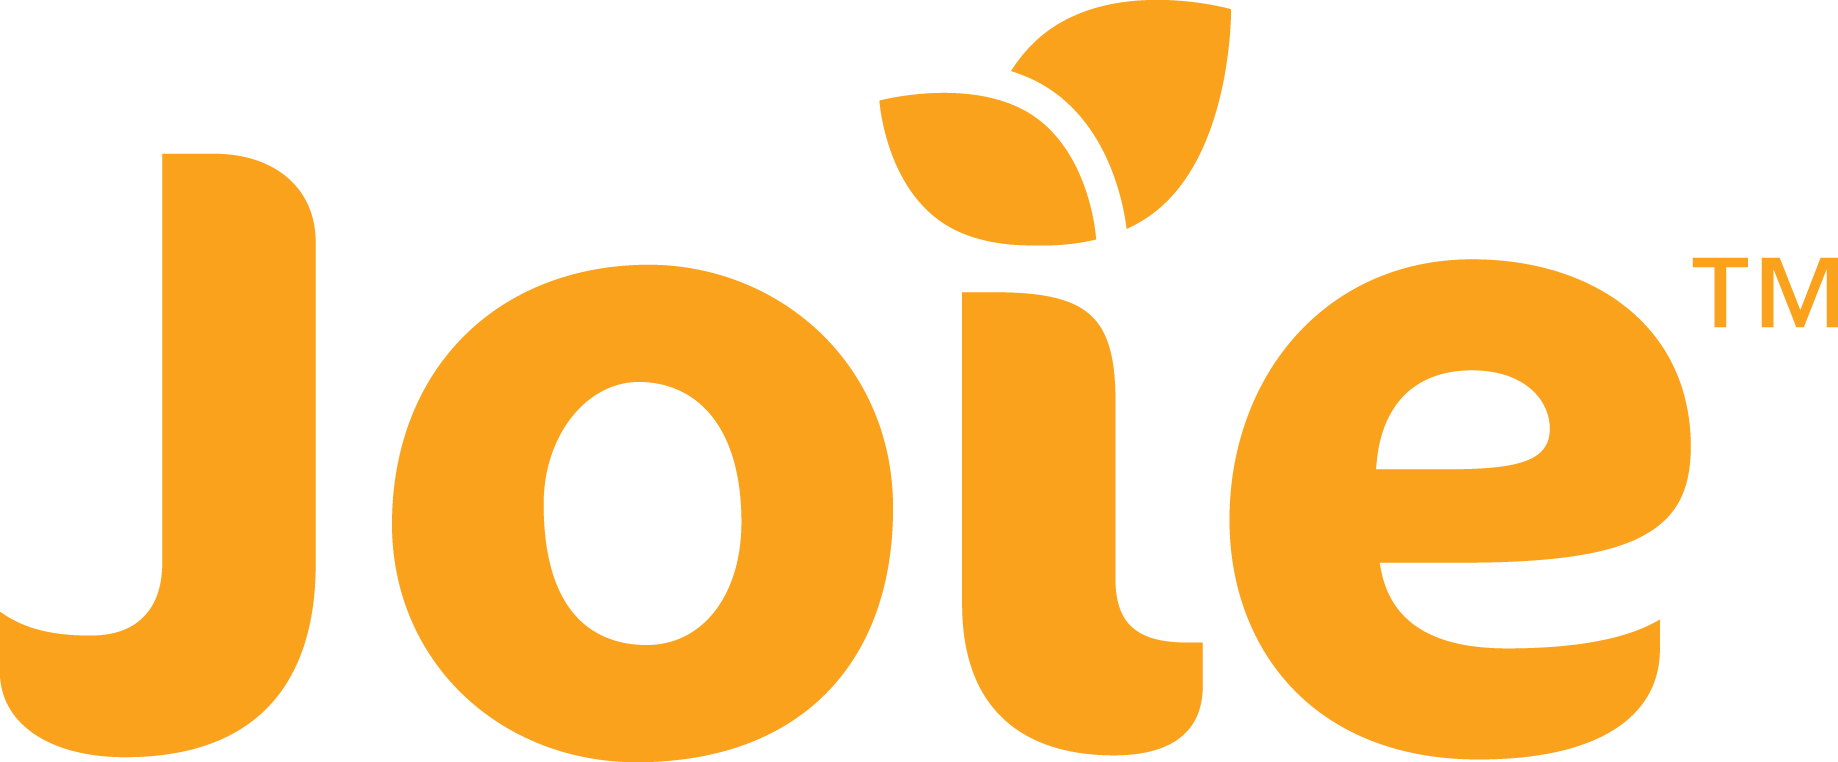 Image result for joie logo